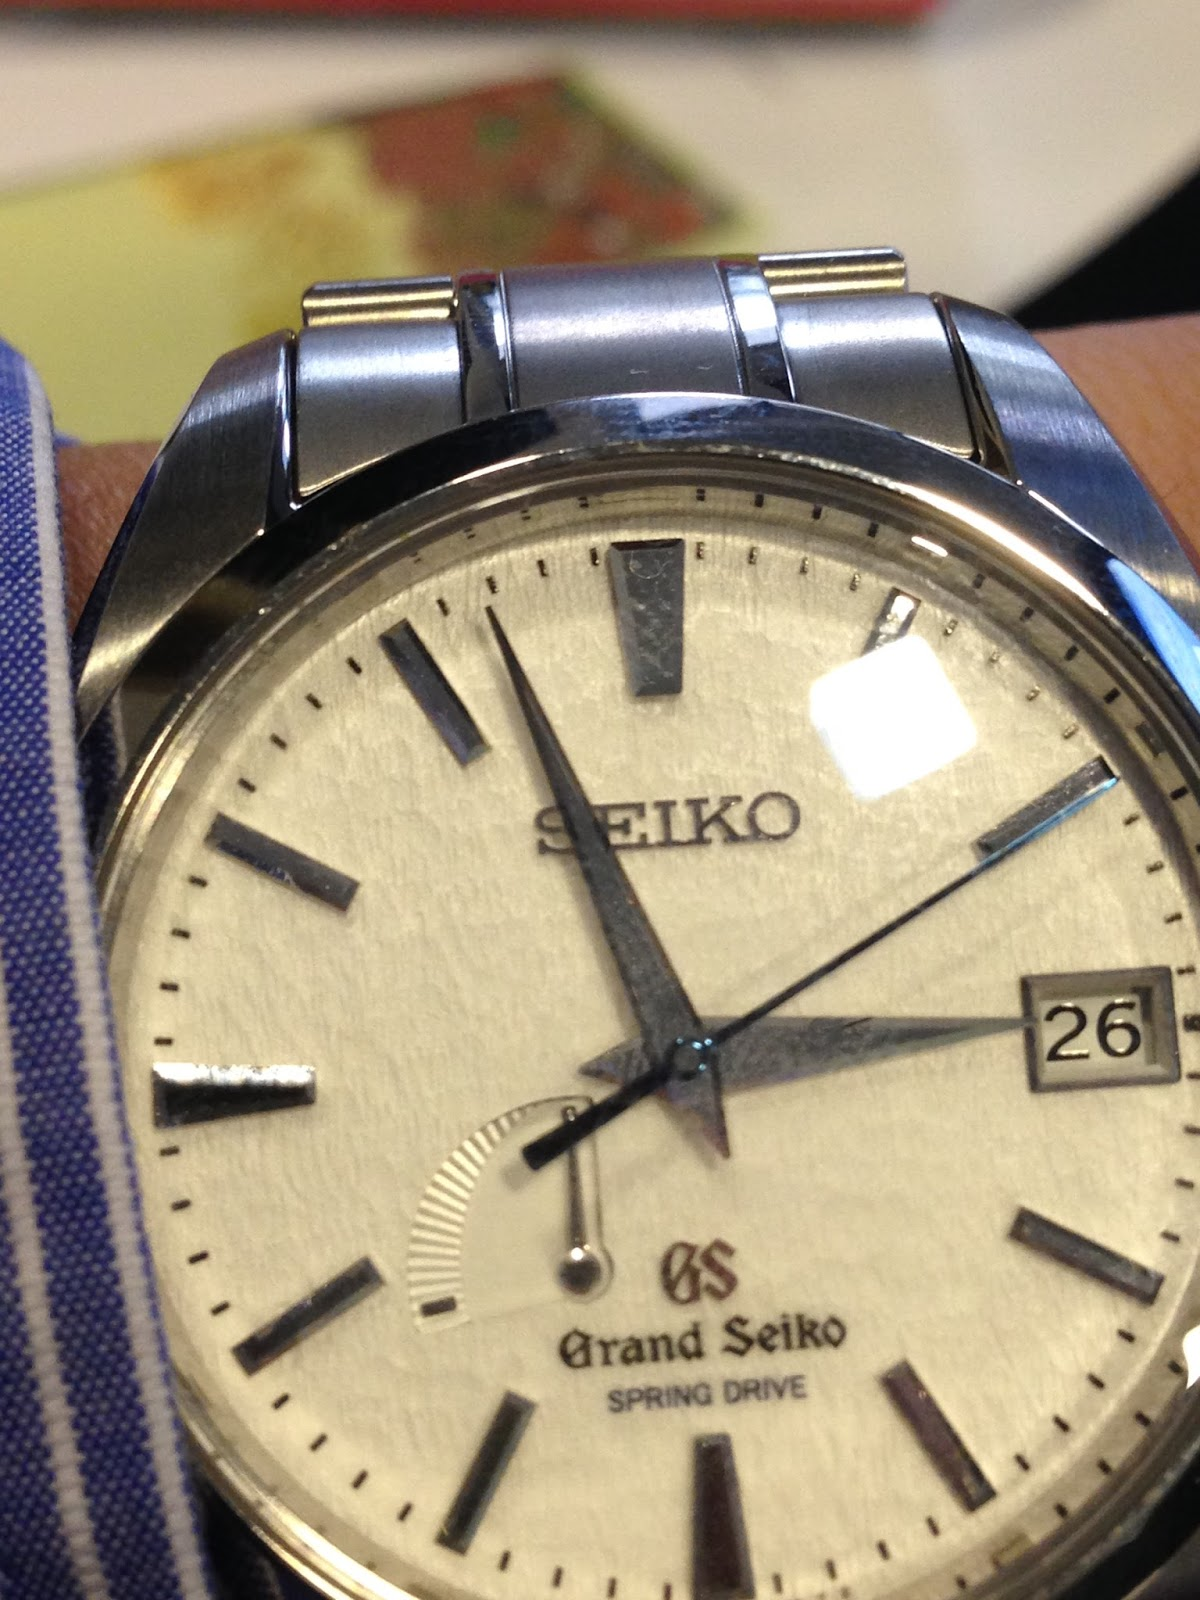 My eastern watch collection seikos grand seiko sbga011 spring the dial on the sbga011 is where the visual magic kicks in at a glance it forgivable for most people to not find it interesting altavistaventures Choice Image